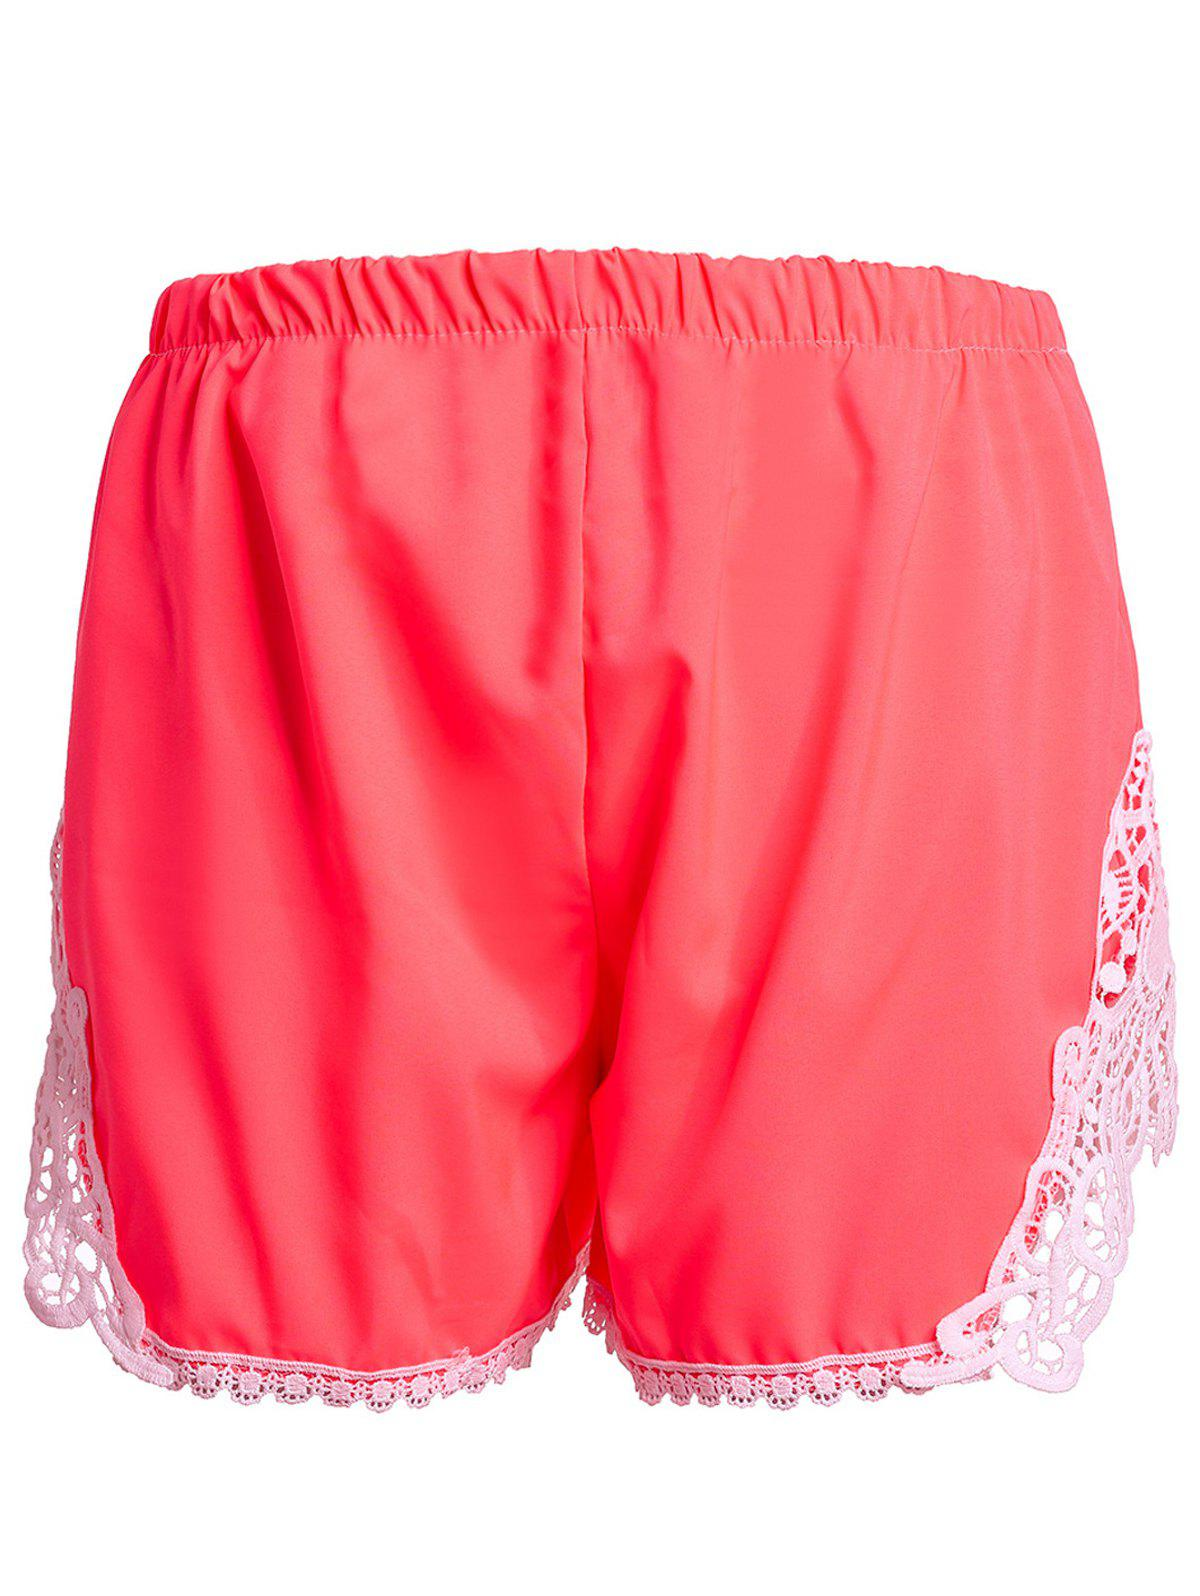 Sweet Laced Elastic Waist Shorts For Women - PINK S